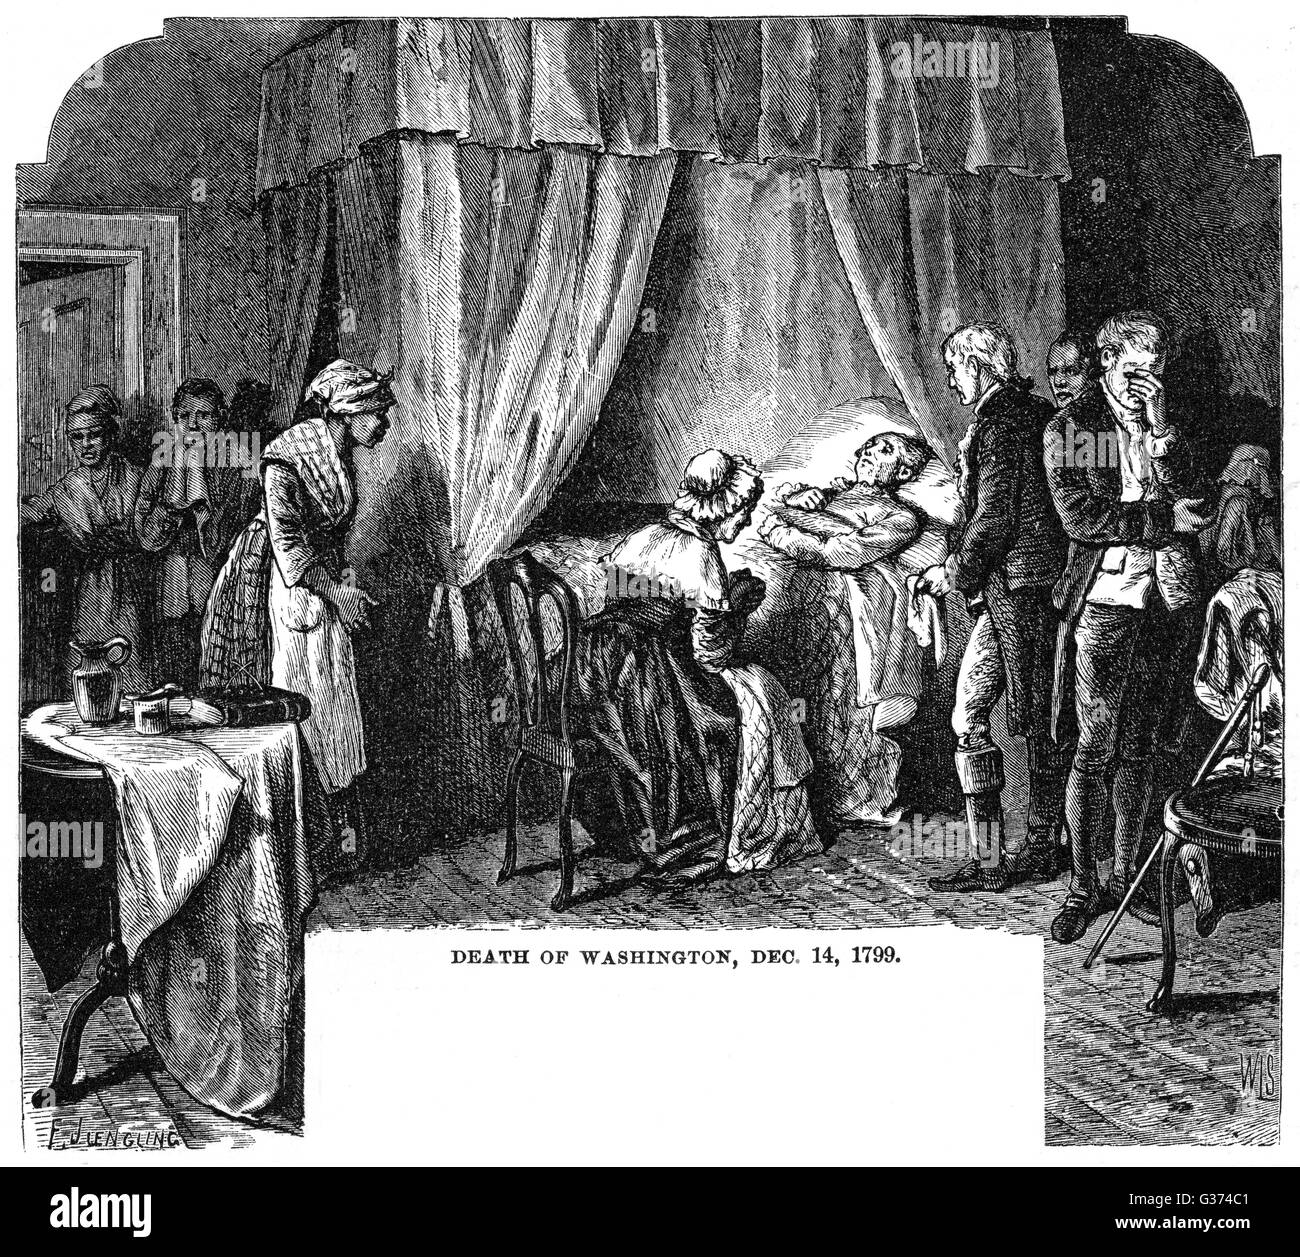 DEATH OF WASHINGTON          Date: 14 December 1799 - Stock Image